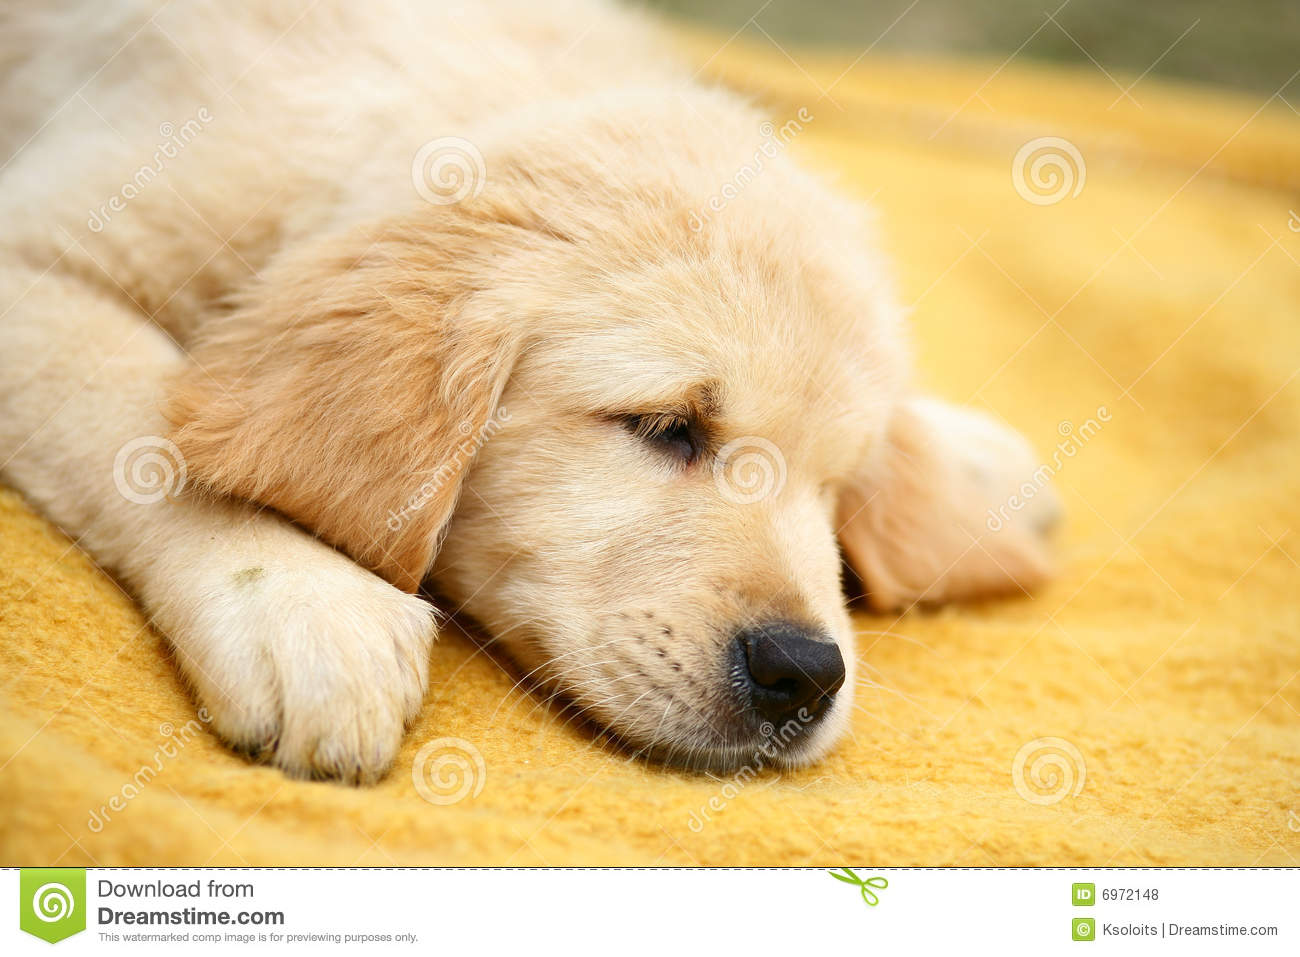 Image Result For Puppy Dog Backgrounda